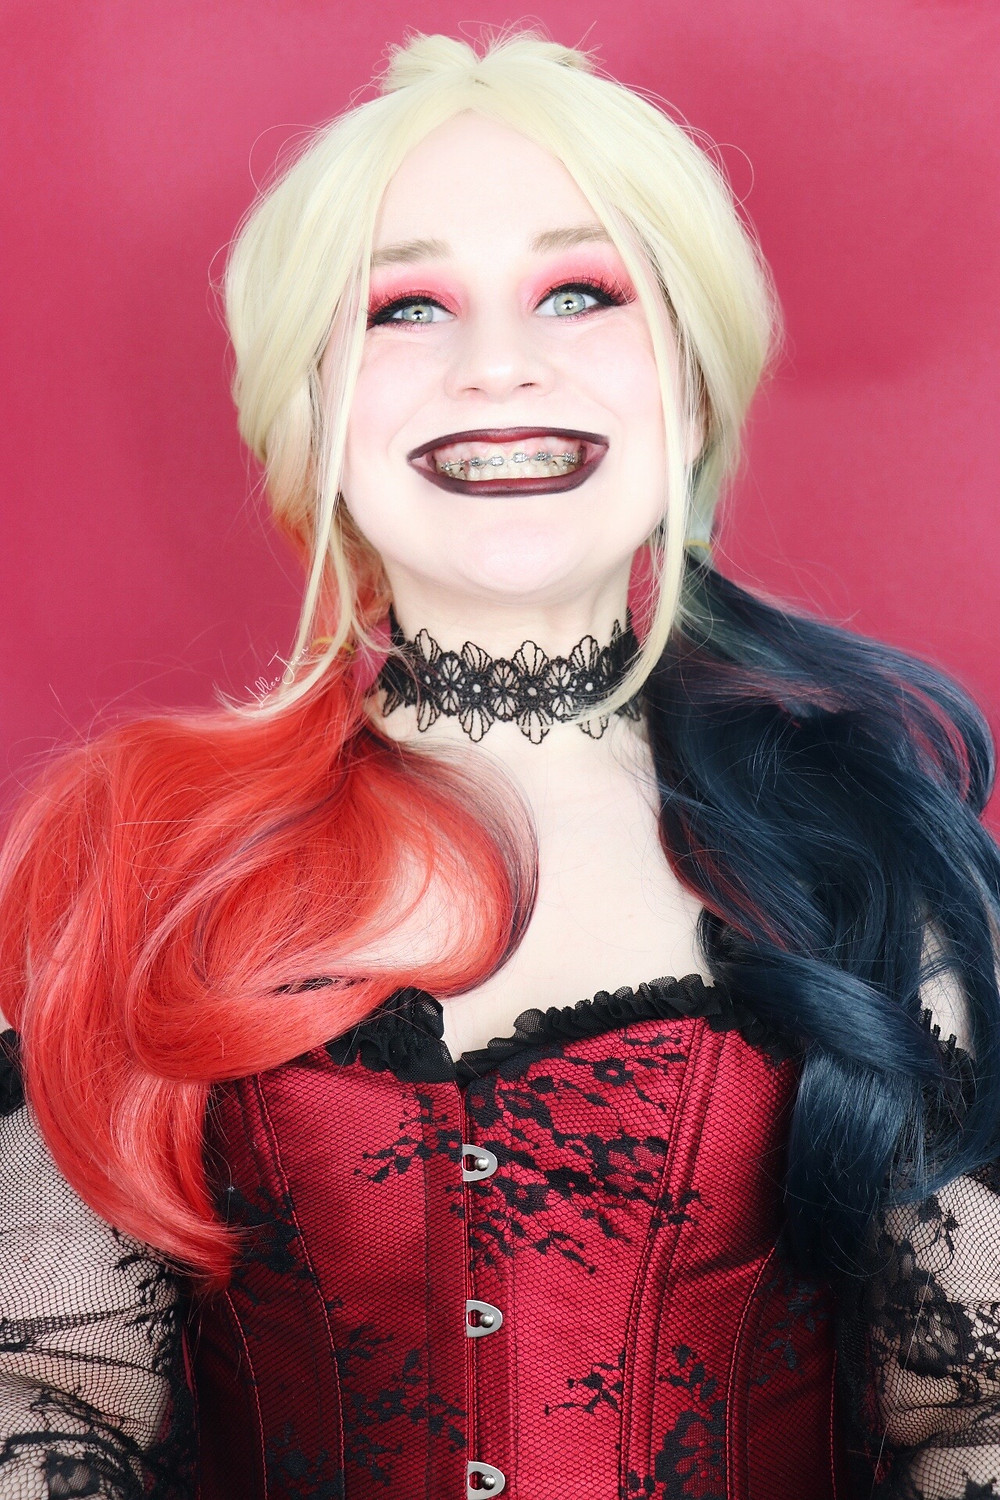 Harley Quinn 'The Suicide Squad' Makeup Tutorial | Too Faced Mini 2021 | Lillee Jean